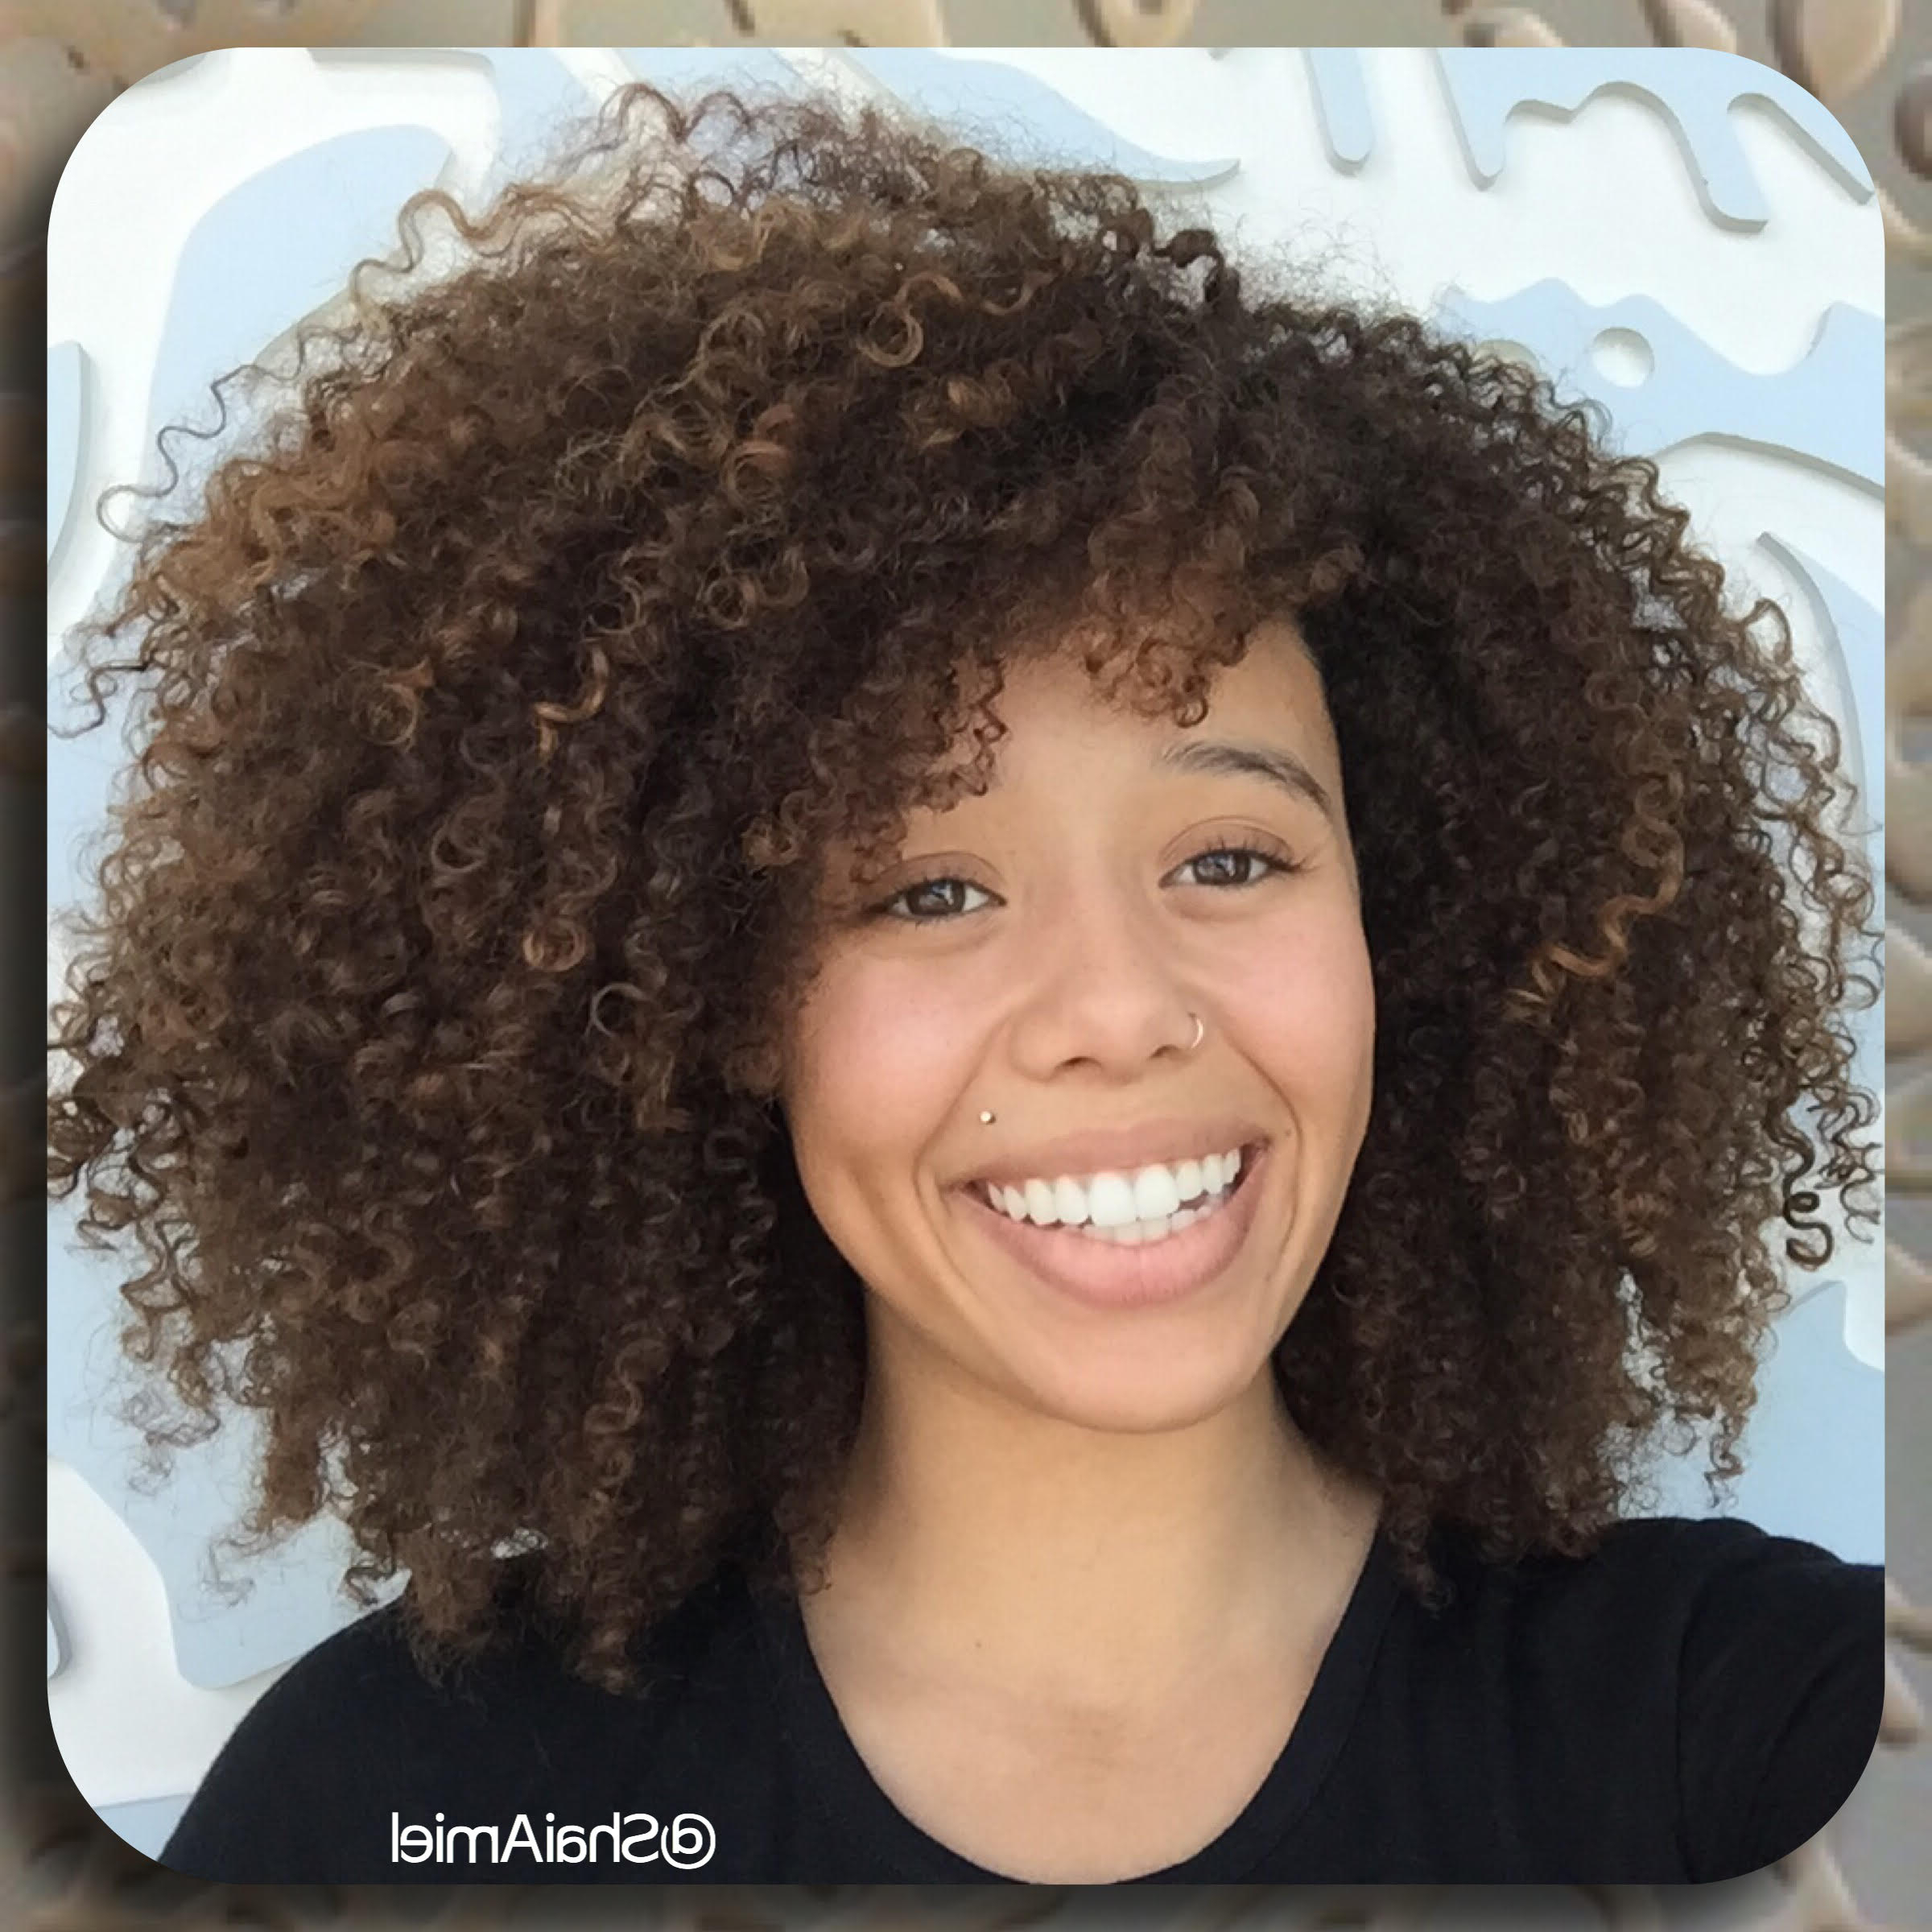 Remarkable Cute Short Curly Bob Hairstyles For Your Hairstyle With Regard To Cute Curly Bob Hairstyles (View 12 of 25)